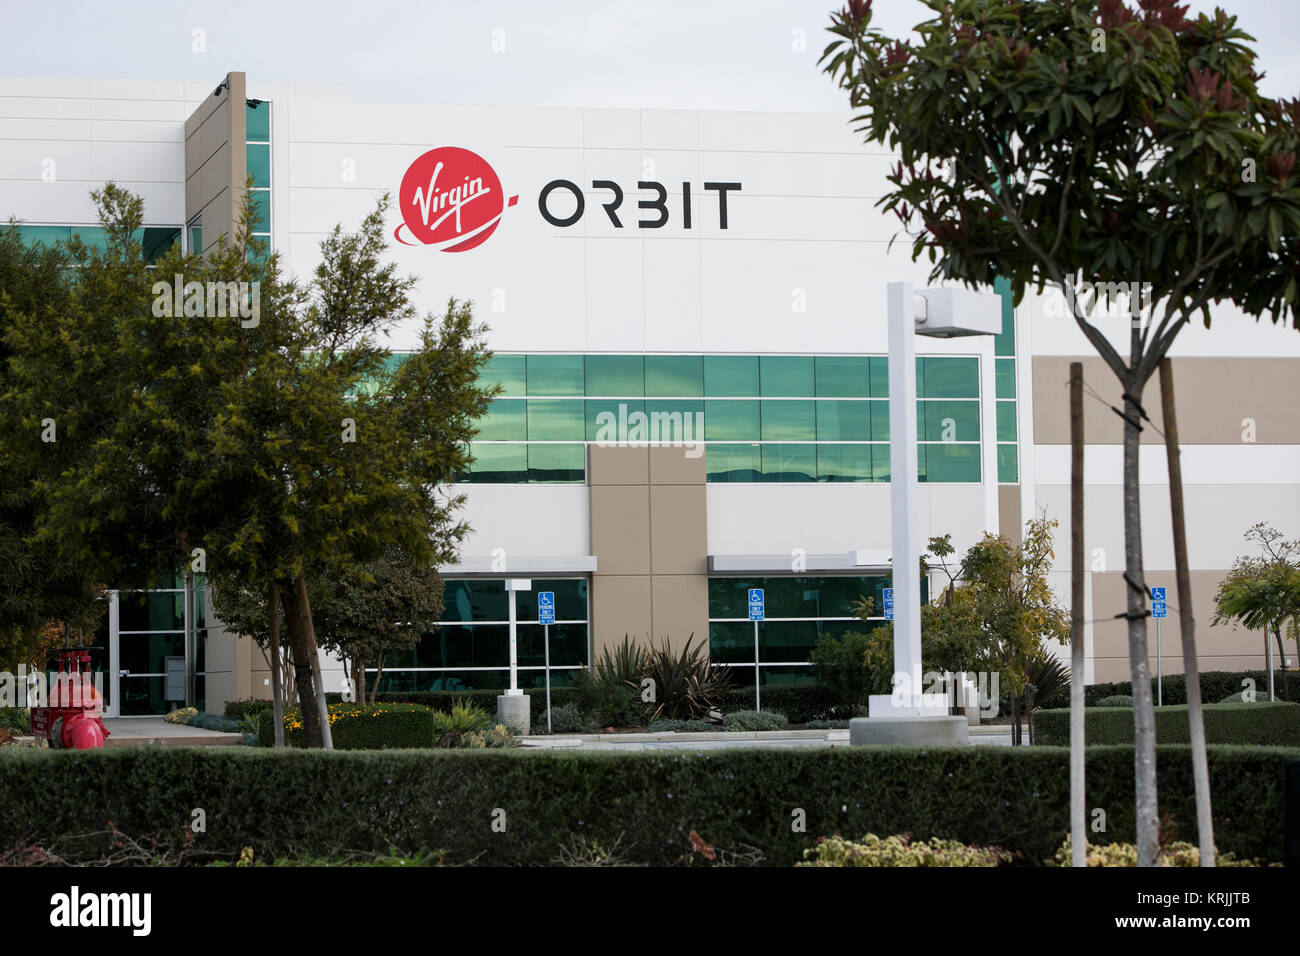 Virgin galactic stock photos virgin galactic stock images alamy a logo sign outside of the headquarters of virgin orbit in long beach california buycottarizona